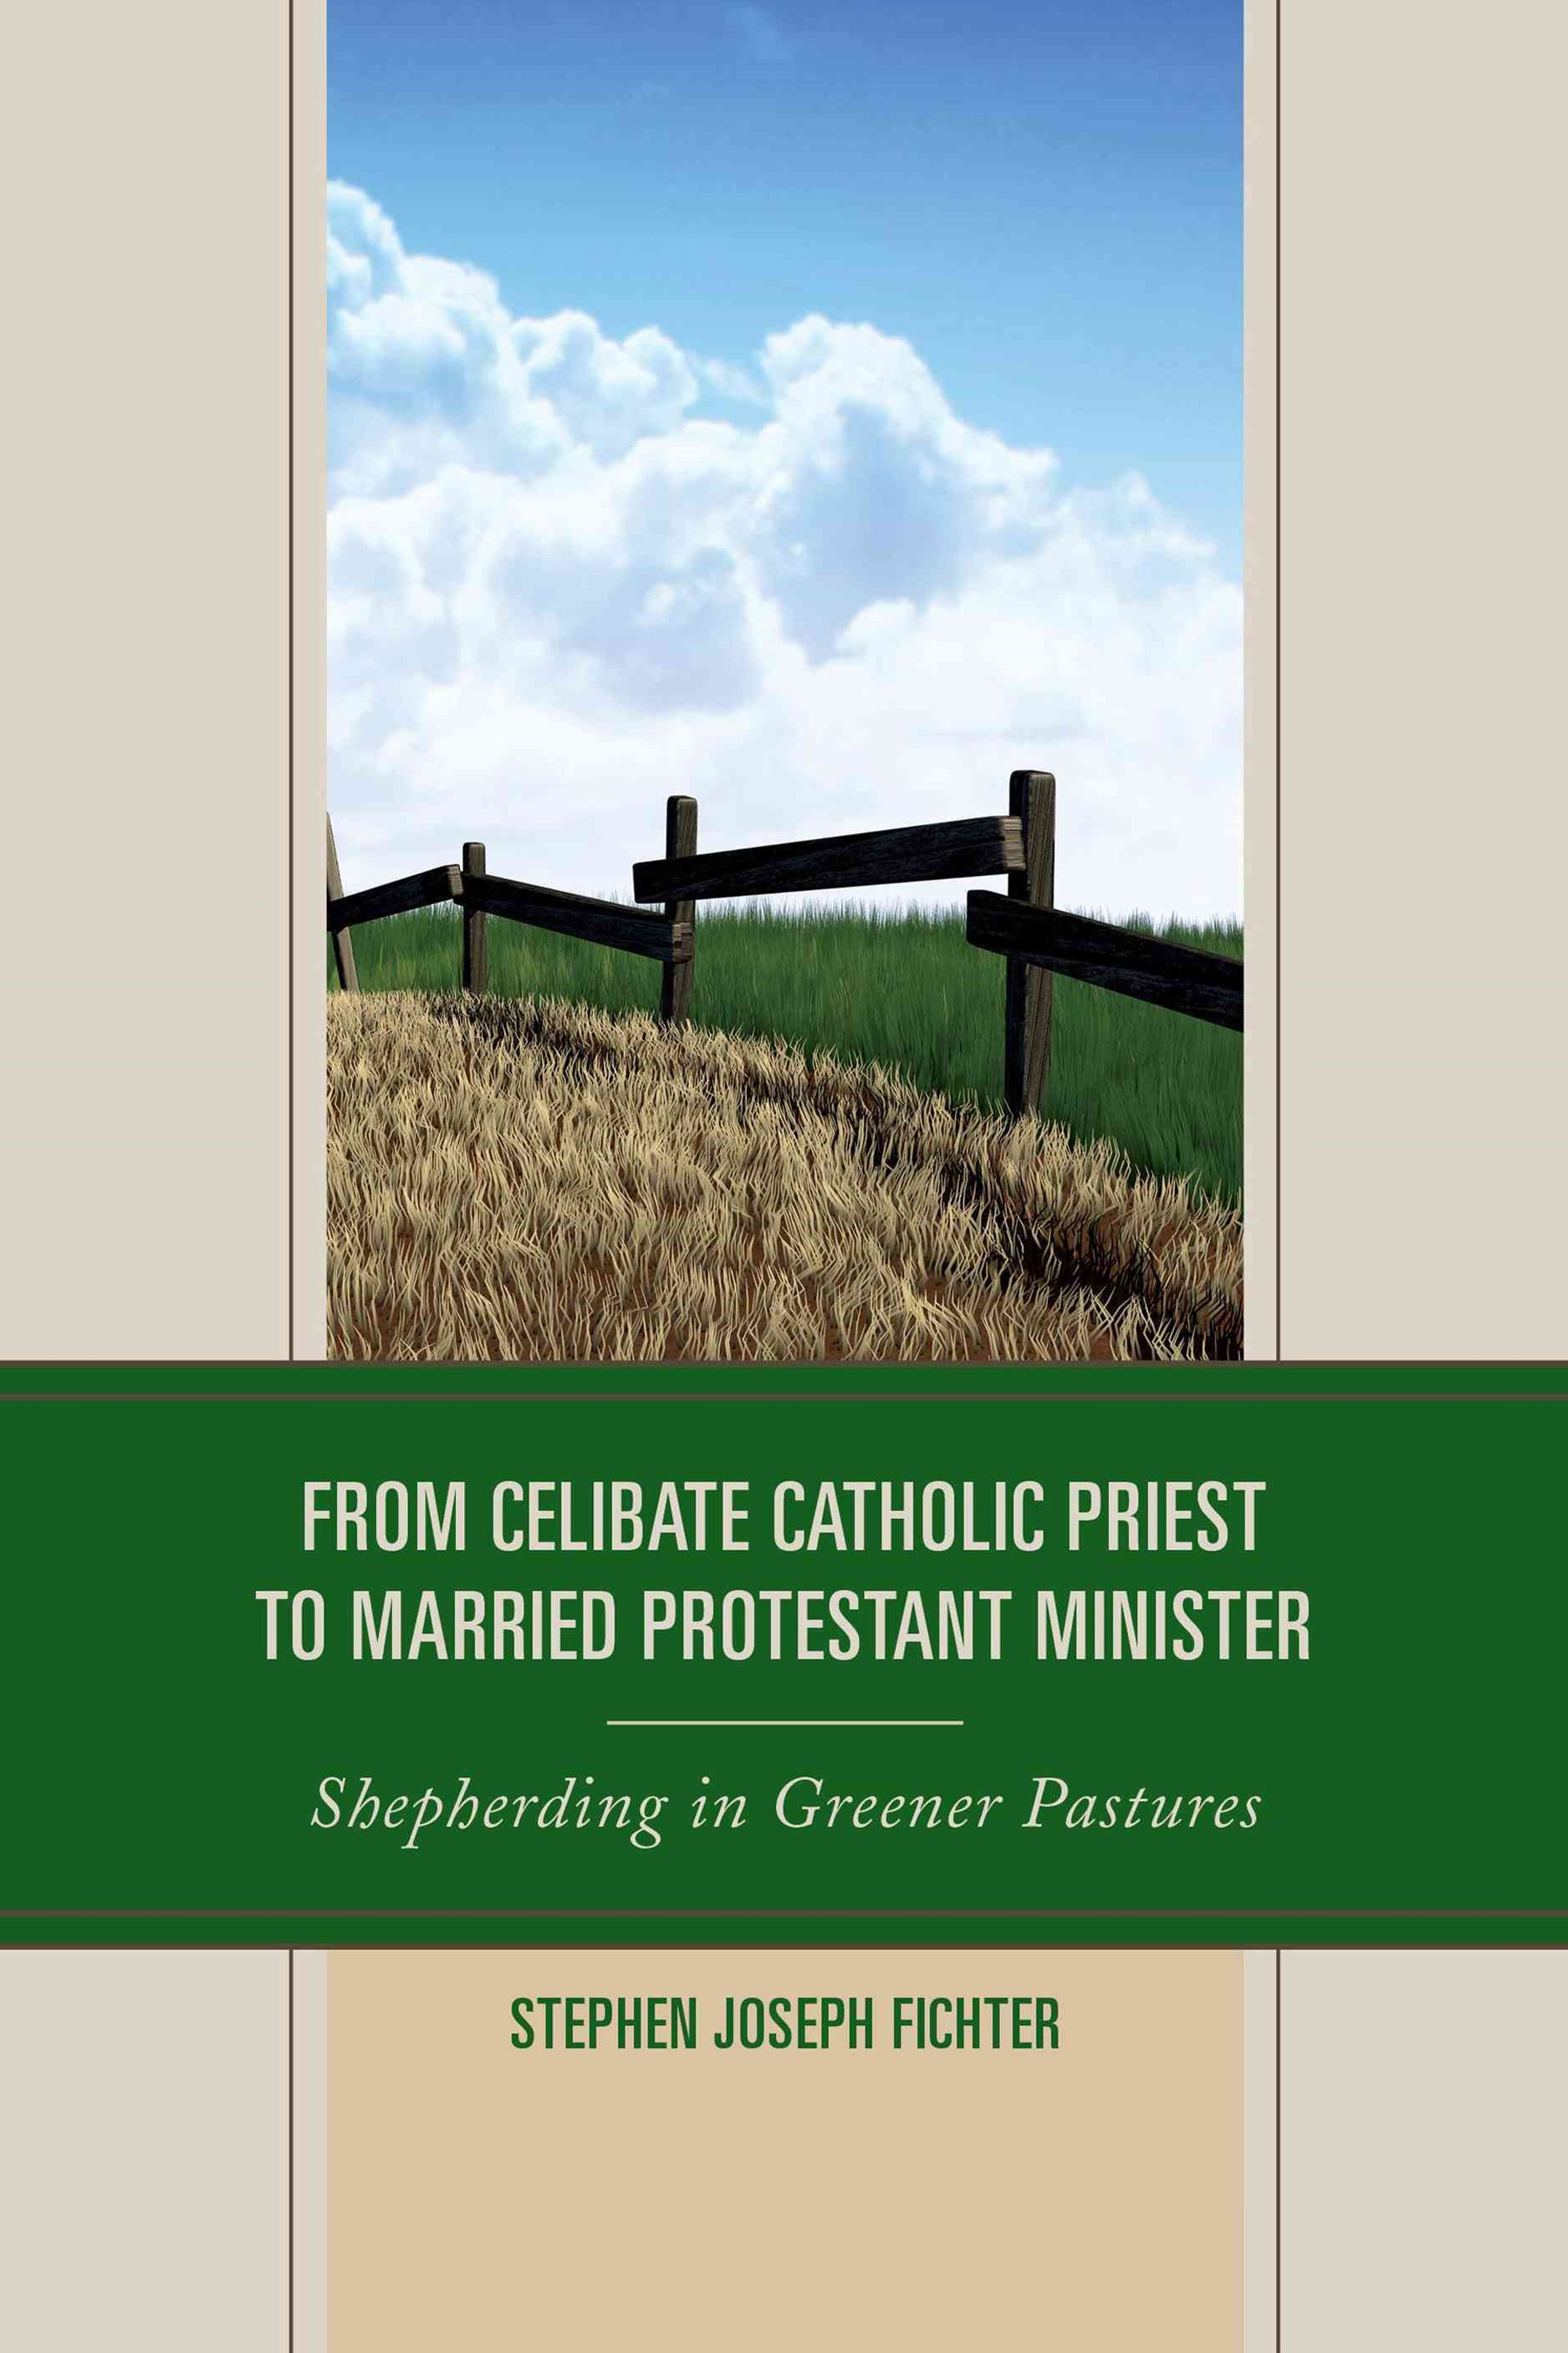 From Celibate Catholic Priest to Married Protestant Minister